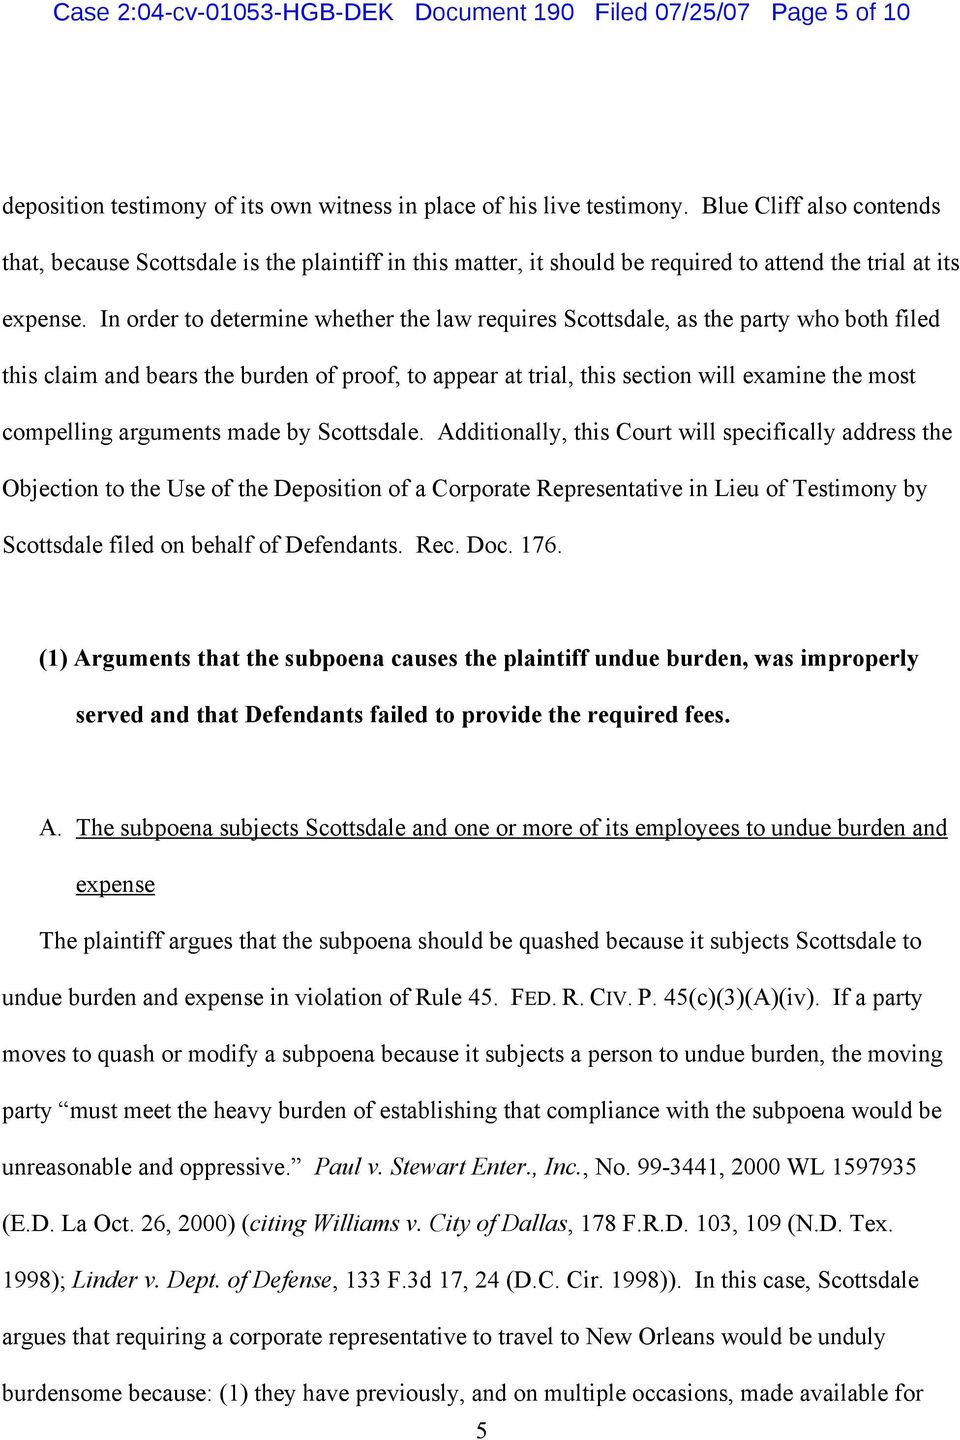 In order to determine whether the law requires Scottsdale, as the party who both filed this claim and bears the burden of proof, to appear at trial, this section will examine the most compelling